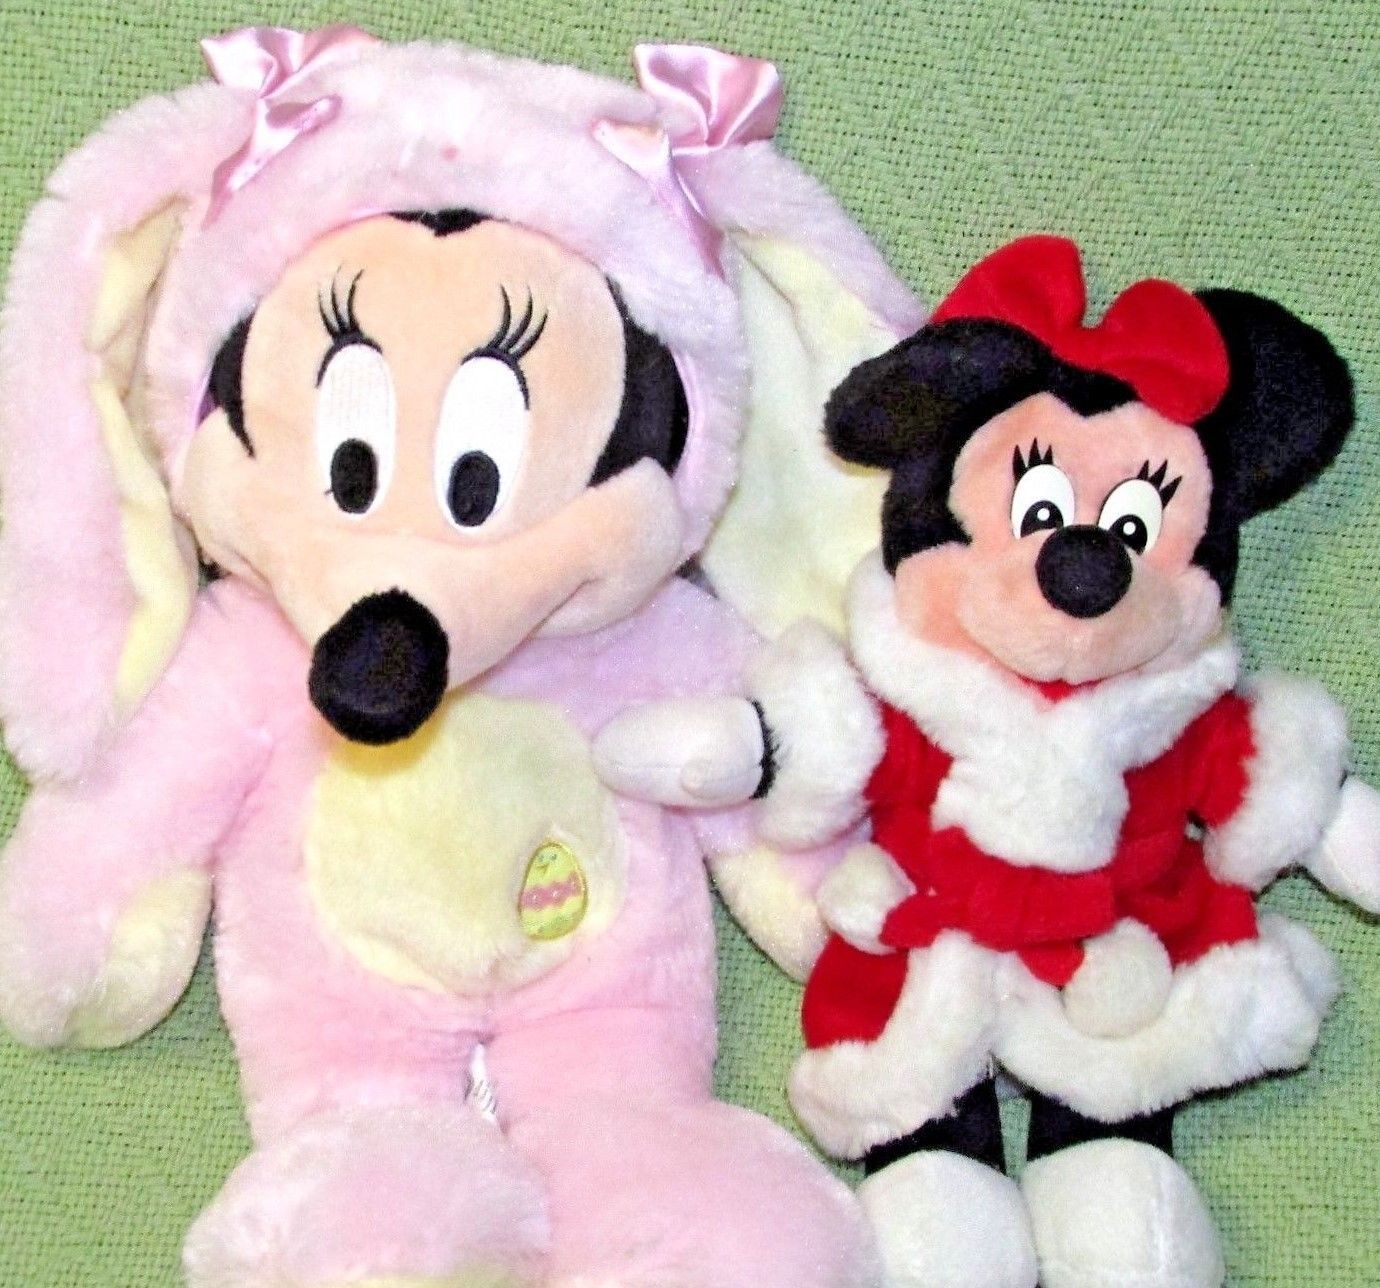 DISNEY STORE BABY Pink Easter Bunny & Mrs. Santa Claus Minnie Mouse Plush Dolls